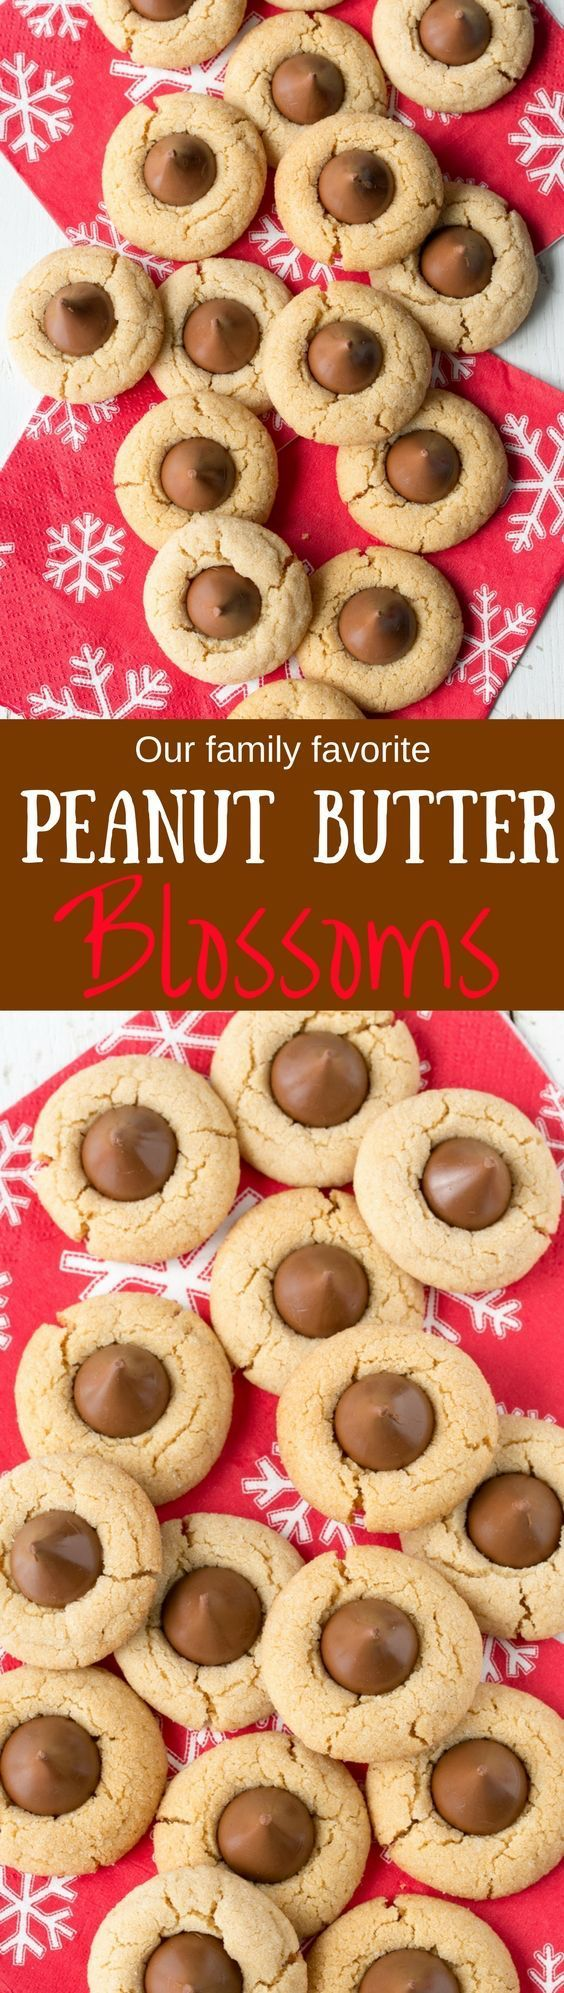 Chocolate kisses - Peanut Butter Blossoms - our holiday family favorite! from www.savingdessert.com